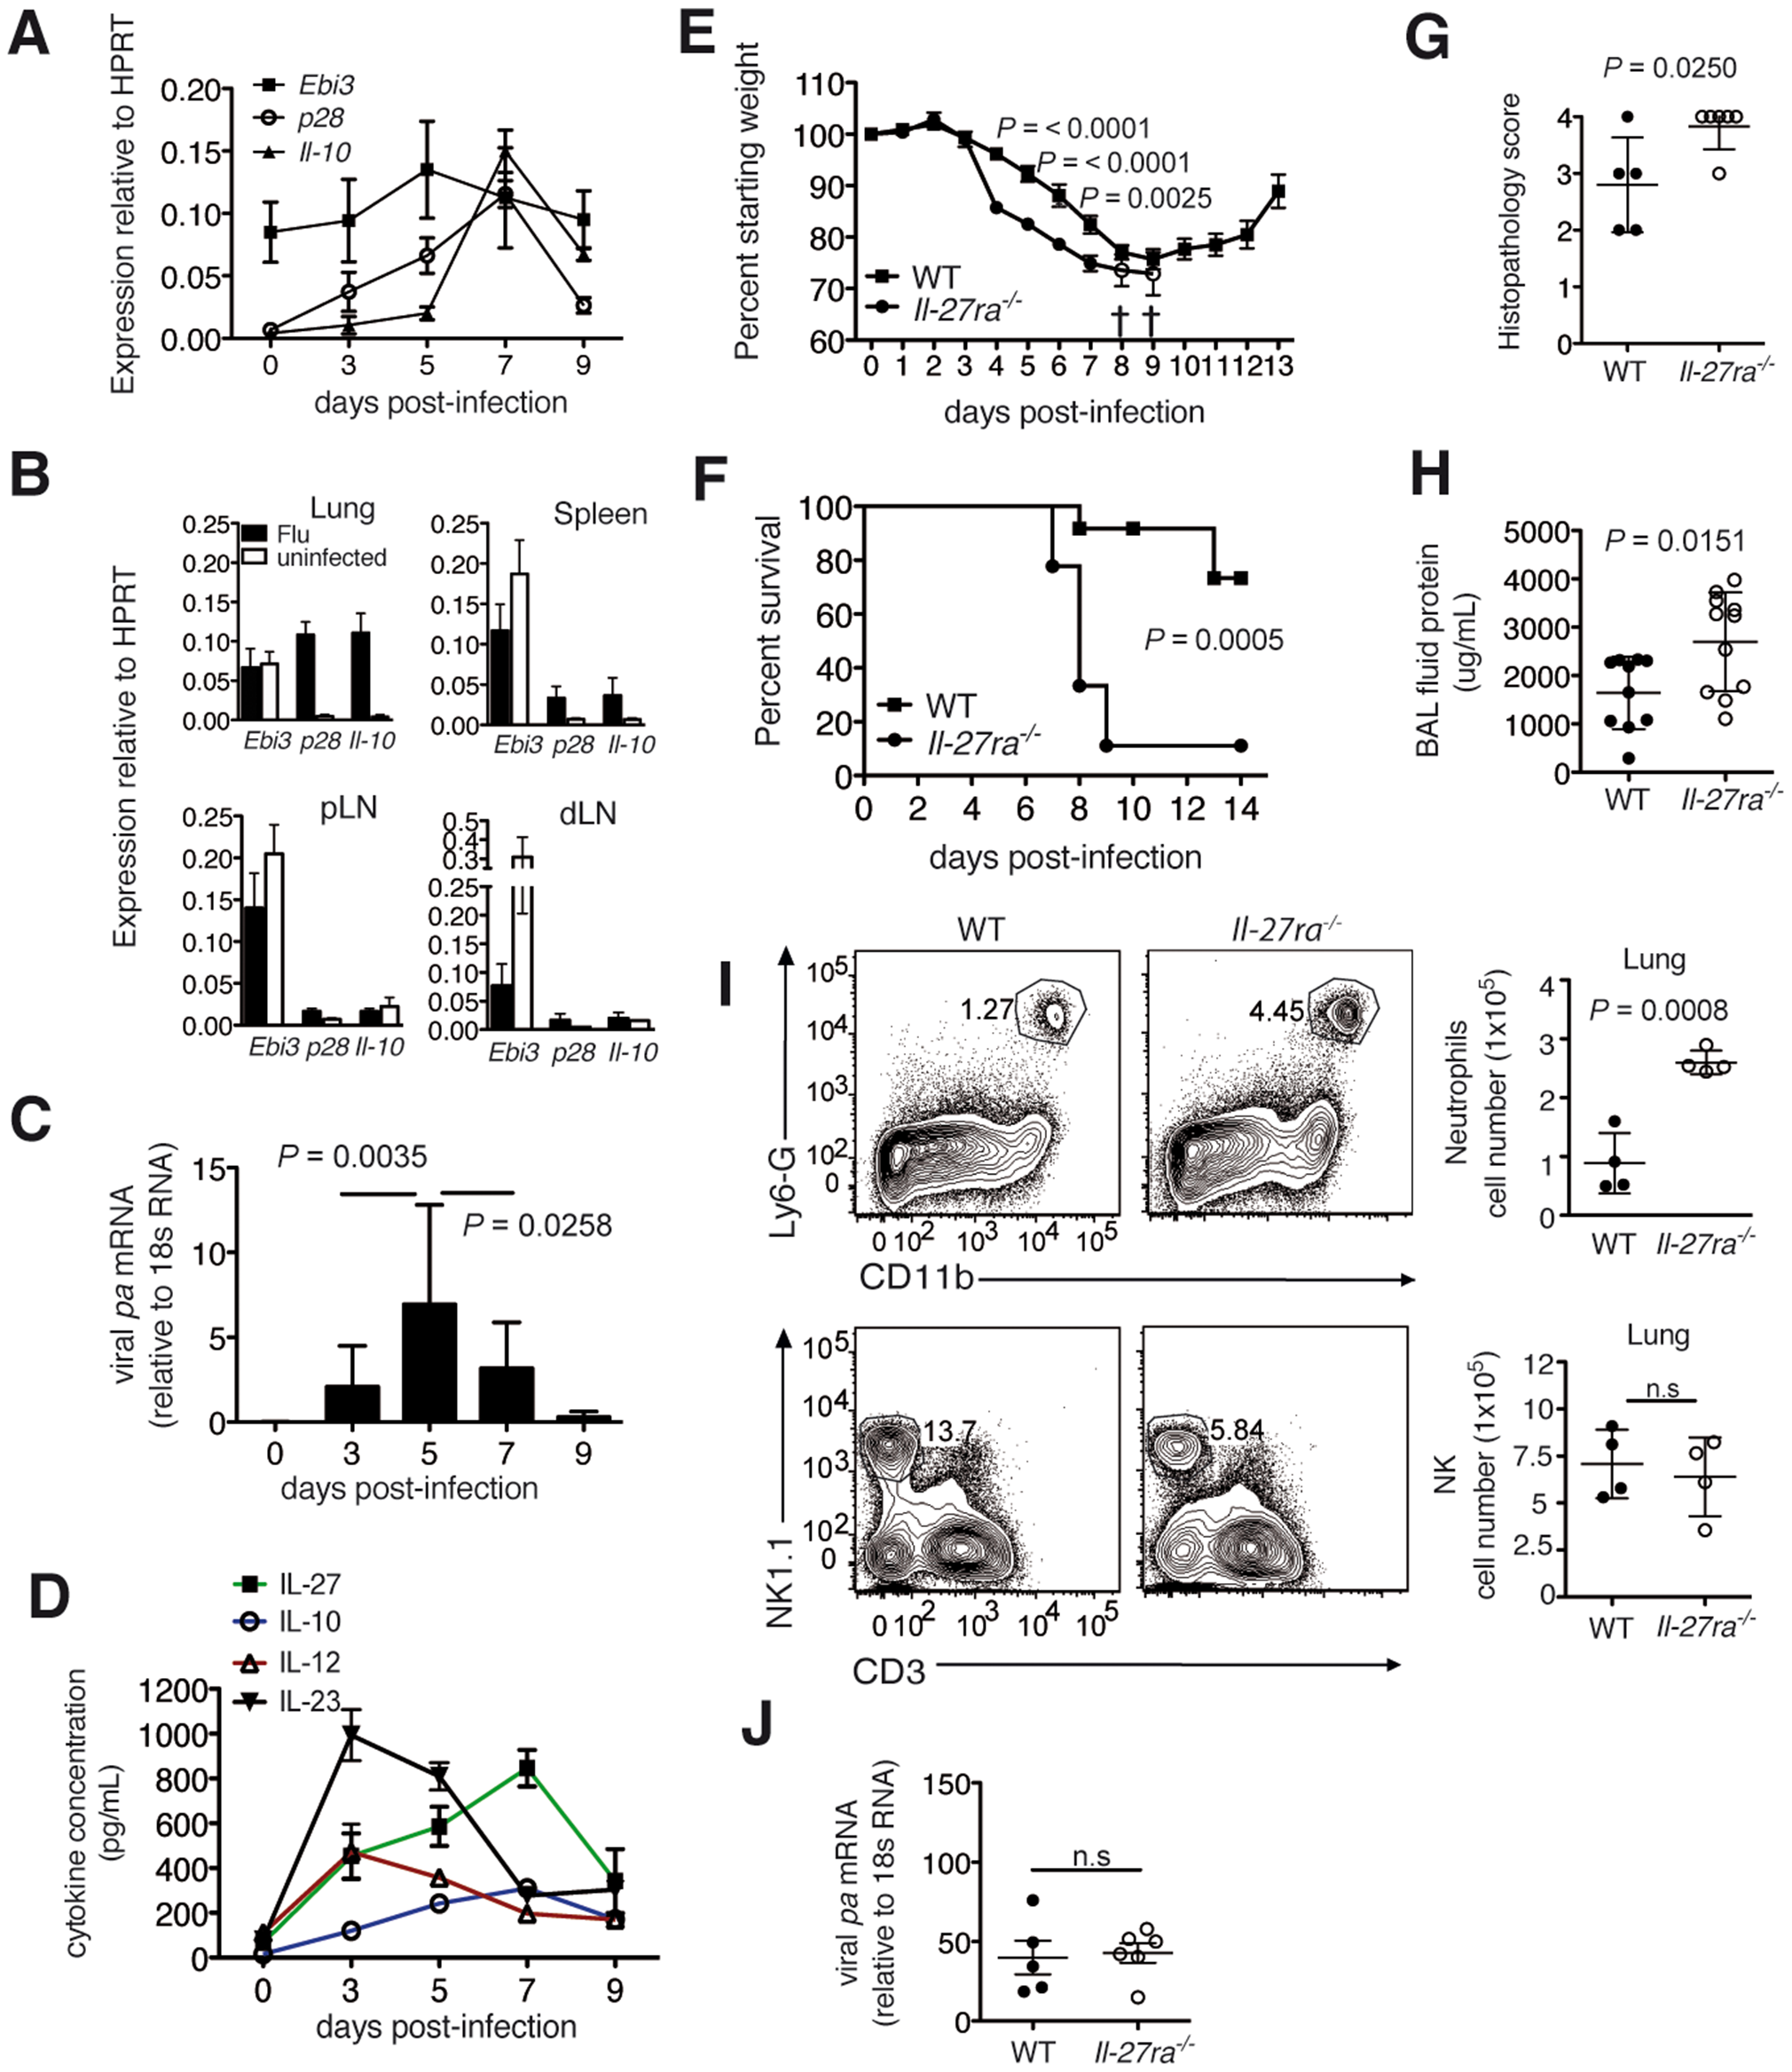 Absence of IL-27Rα leads to increased mortality and immunopathology during influenza.